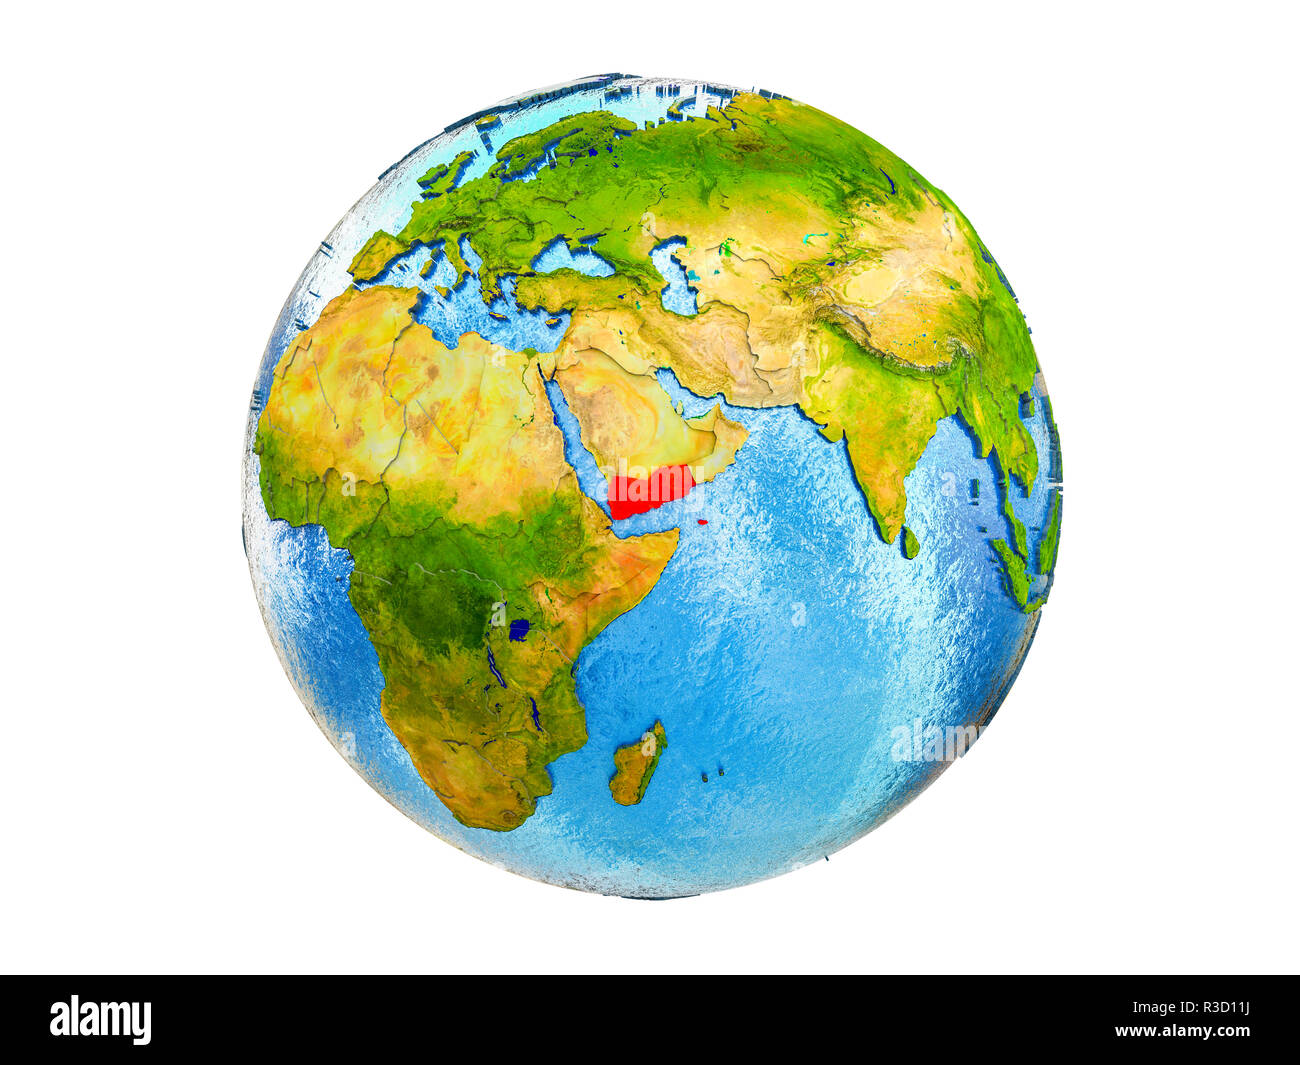 Yemen on 3D model of Earth with country borders and water in oceans. 3D illustration isolated on white background. - Stock Image